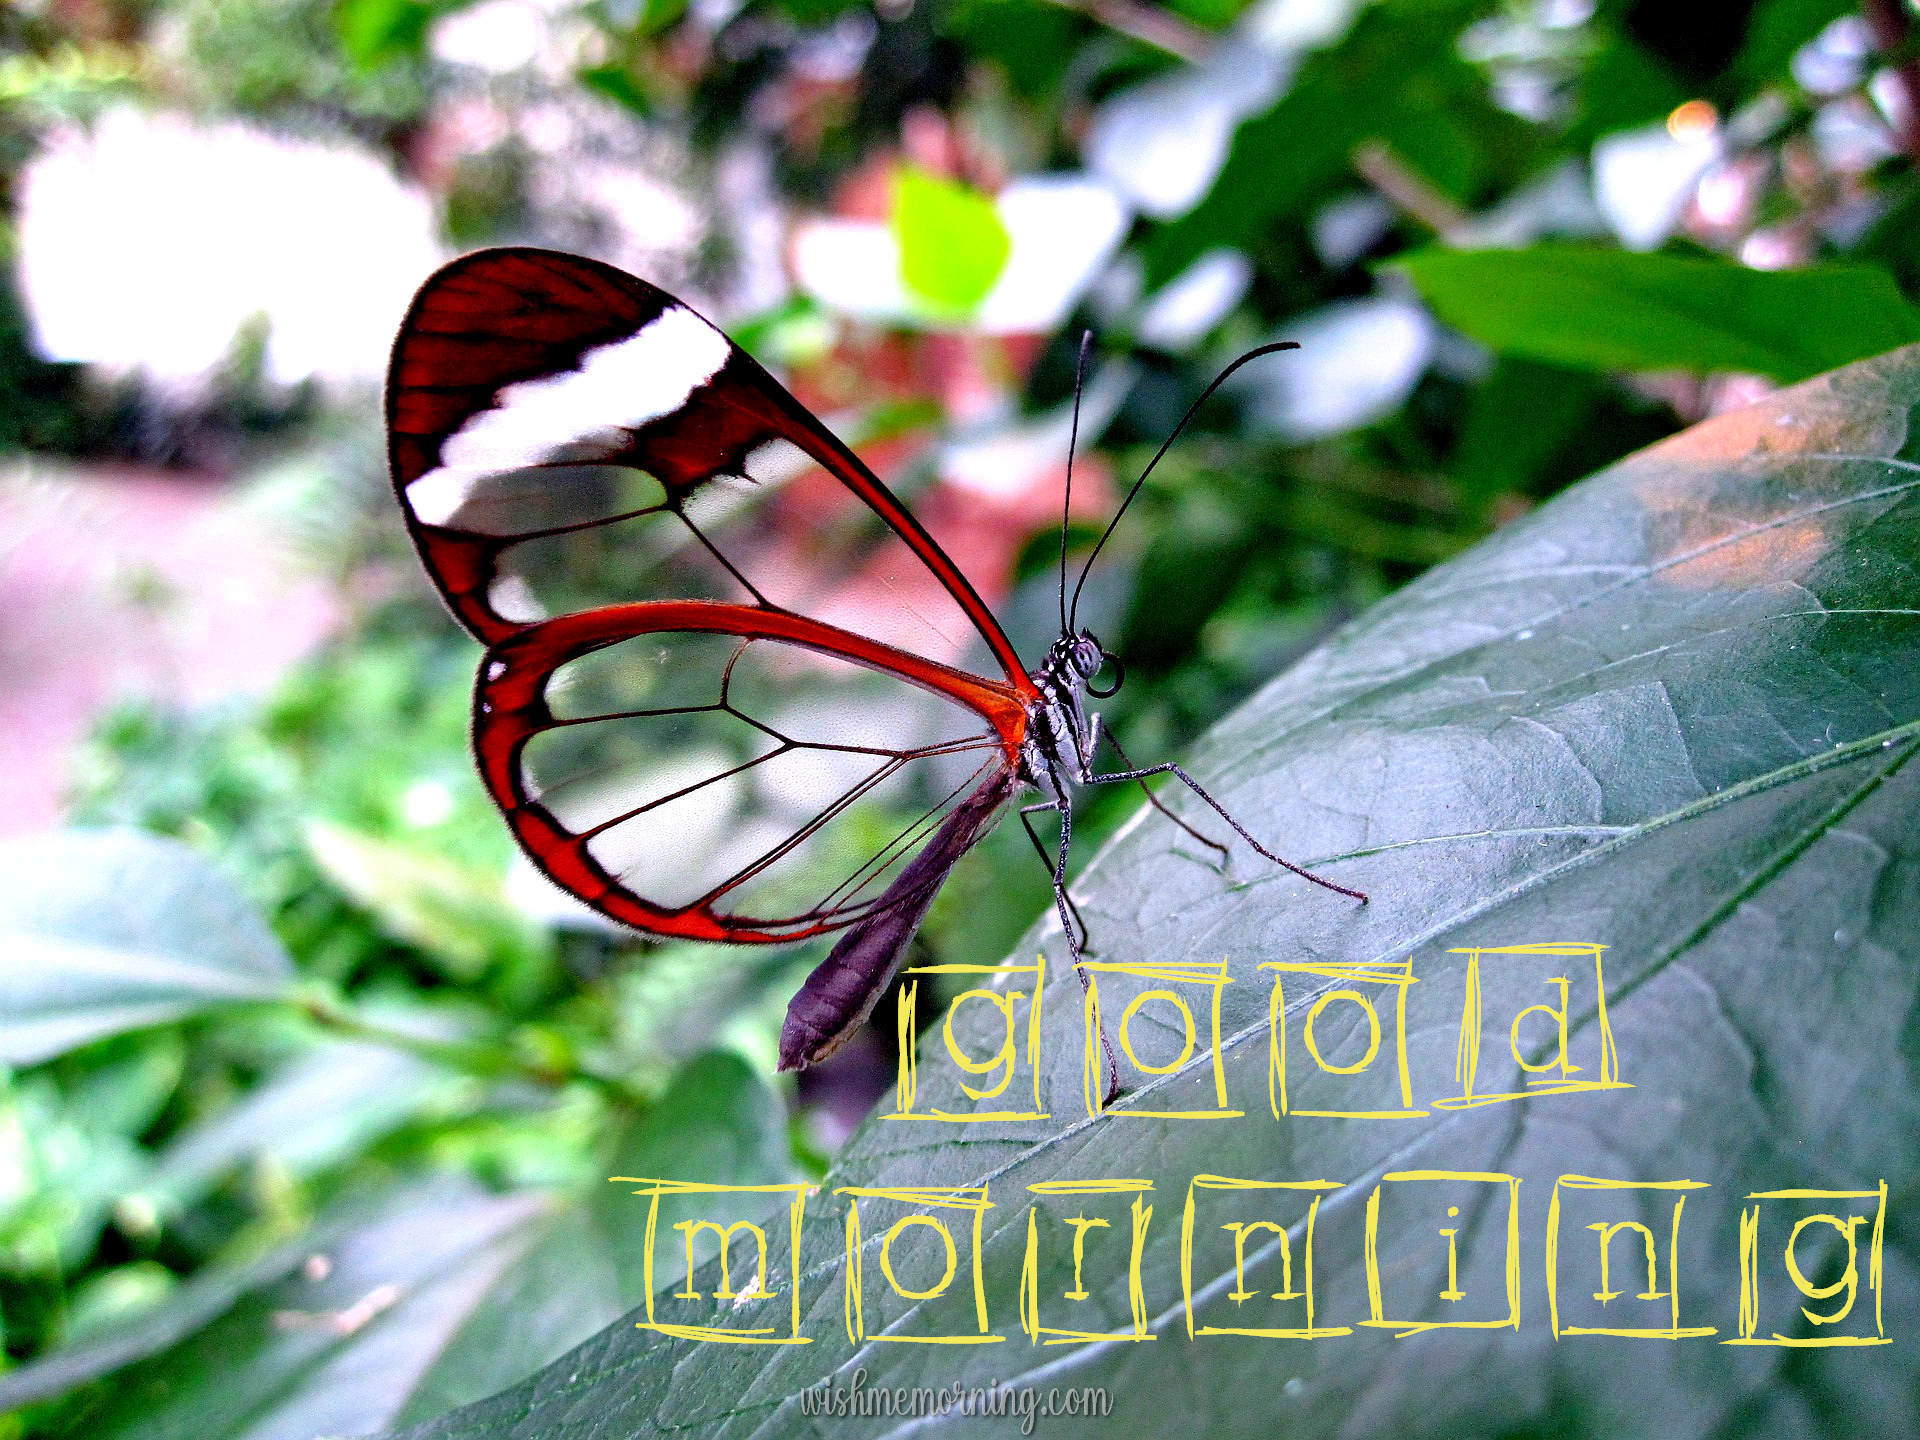 Beautiful Butterfly Good Morning Images wishmemorning.com 6